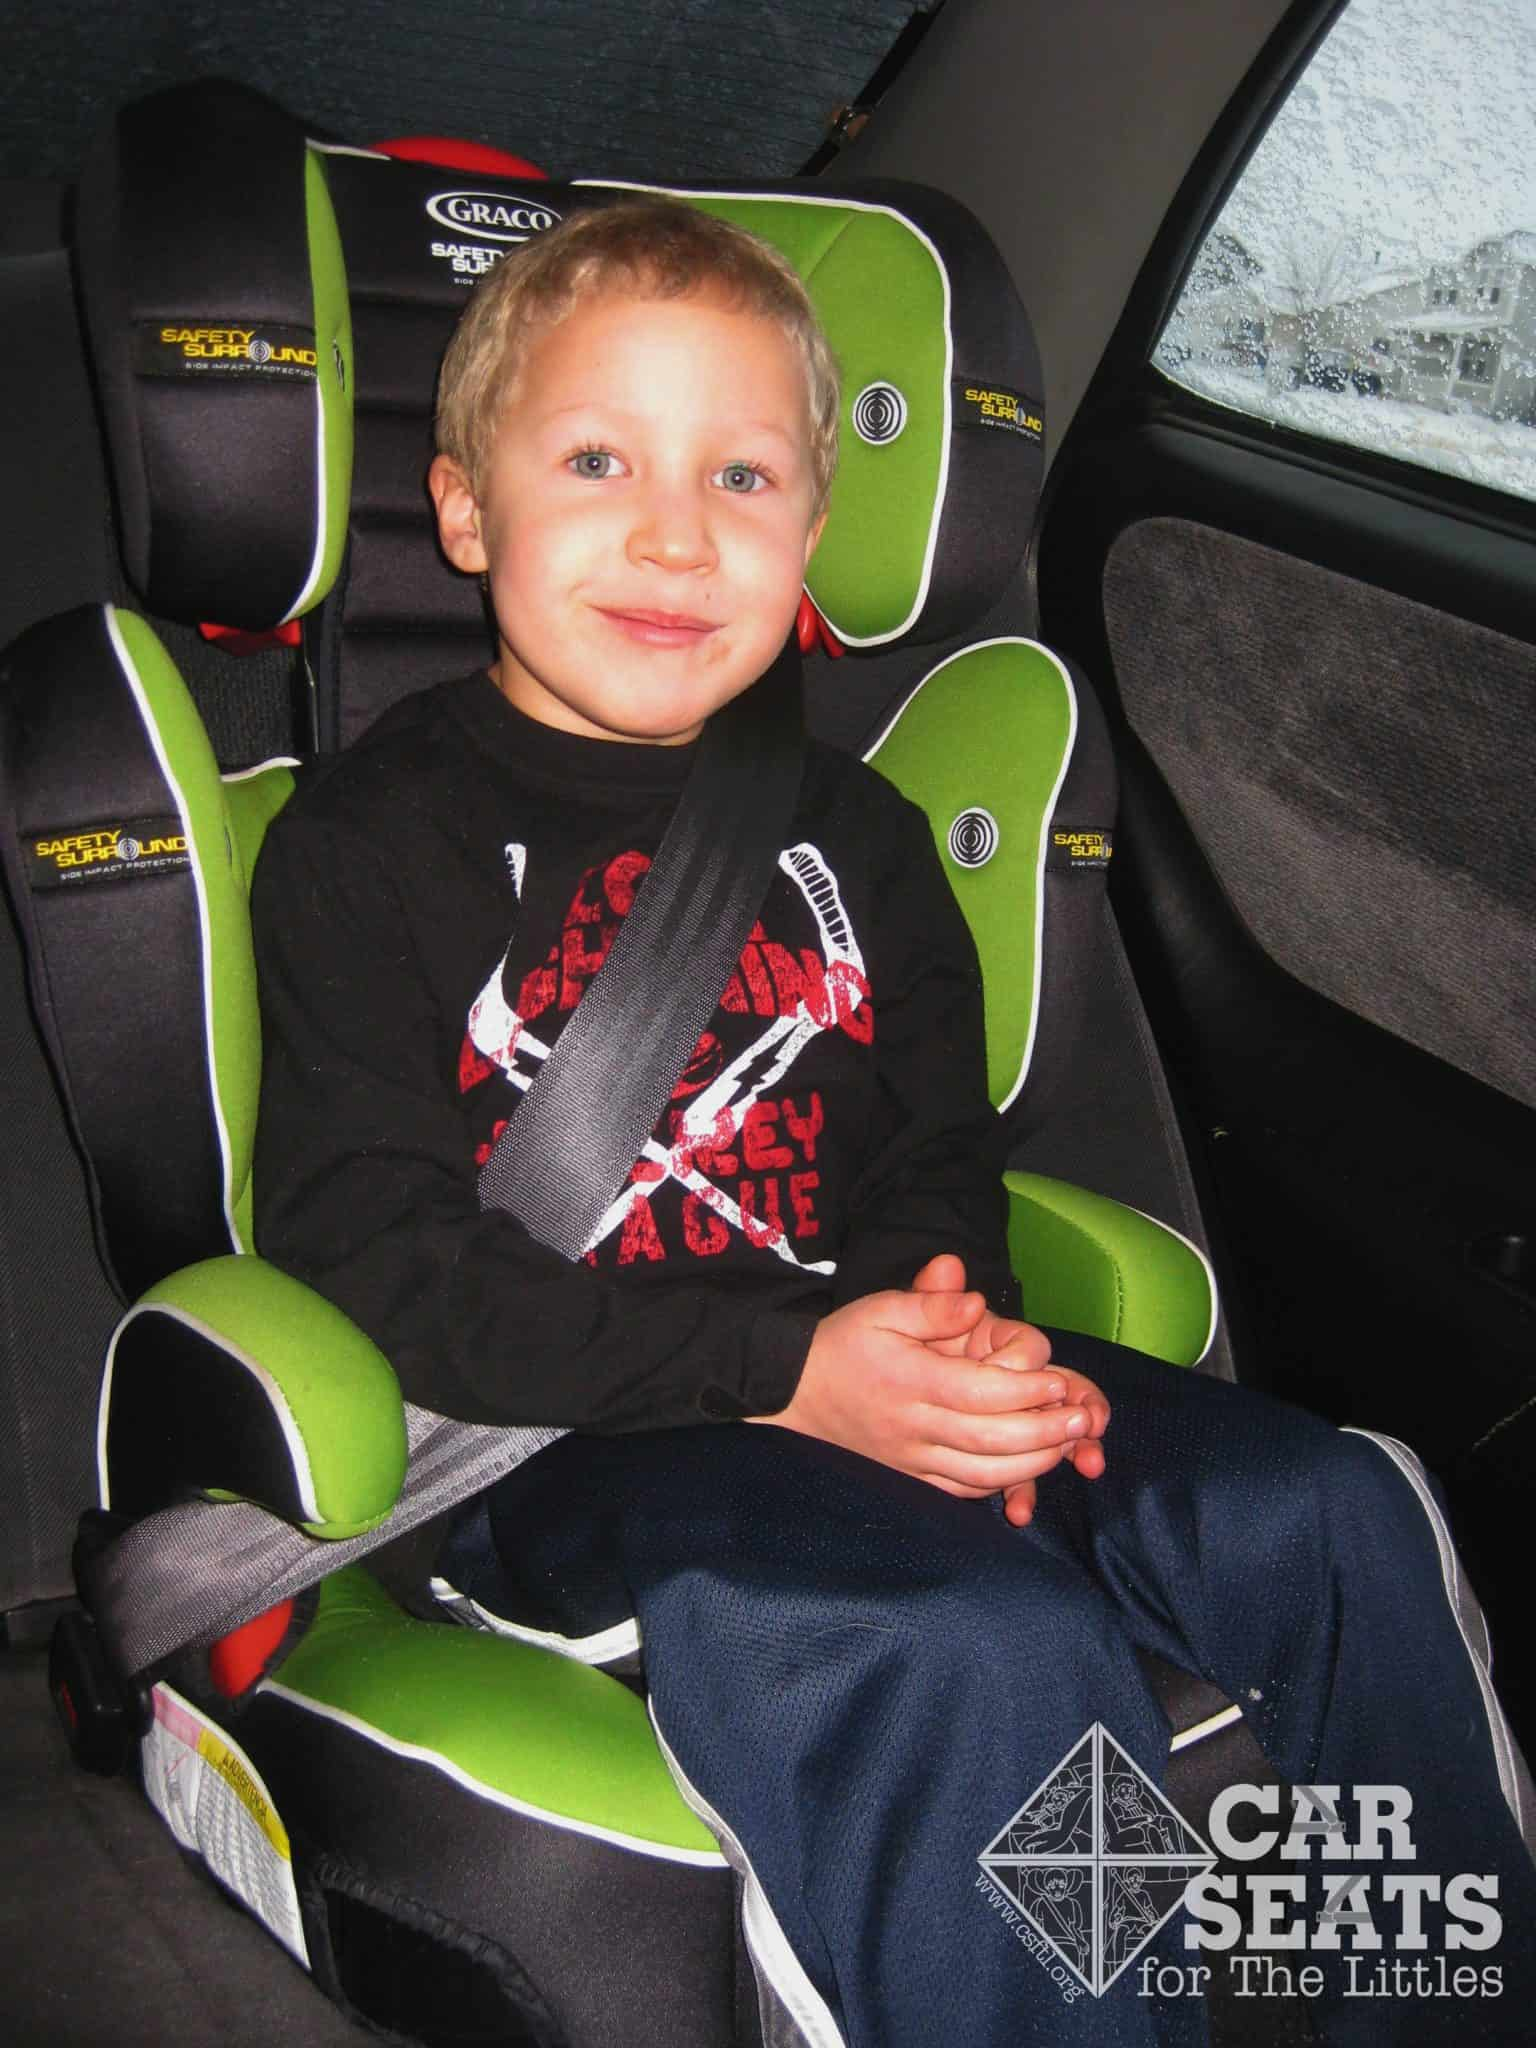 Child Safety Seat How Old Harness Or Booster When To Make The Switch Car Seats